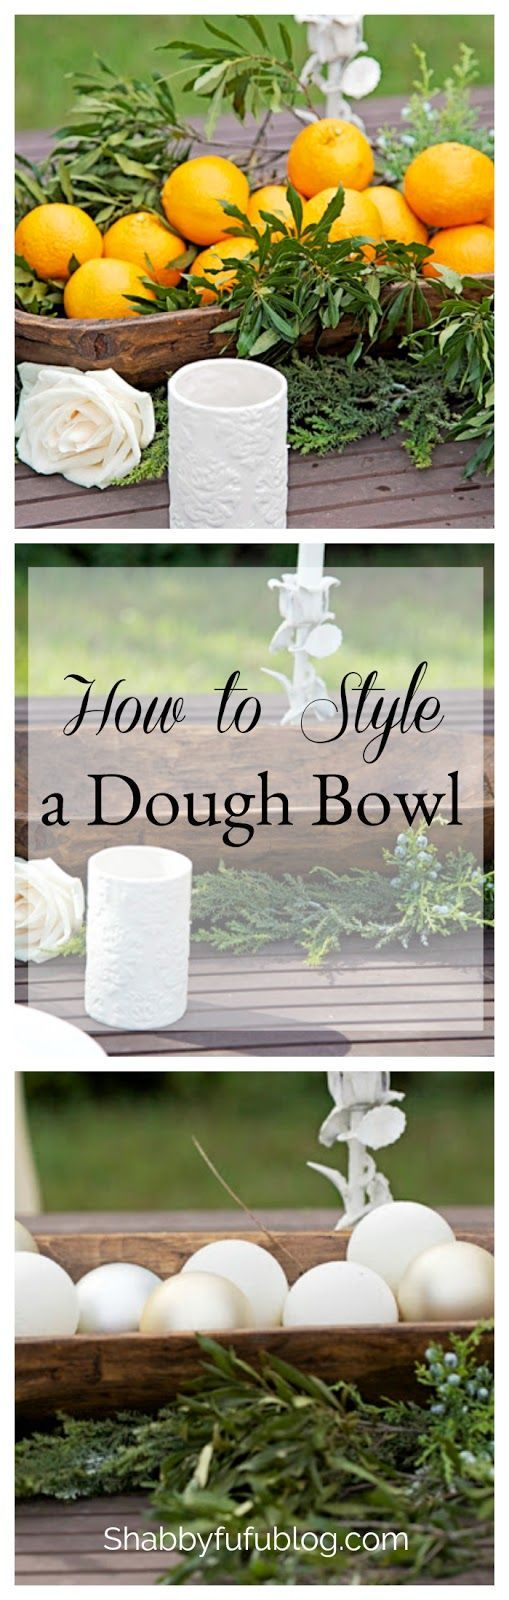 How To Style A Dough Bowl  Style an antique dough bowl or trencher several ways by adding fresh fruit or flowers, pinecones and seasonal decorating items. More on the blog at shabbyfufublog.com  #doughbowl #tablescape #centerpiece